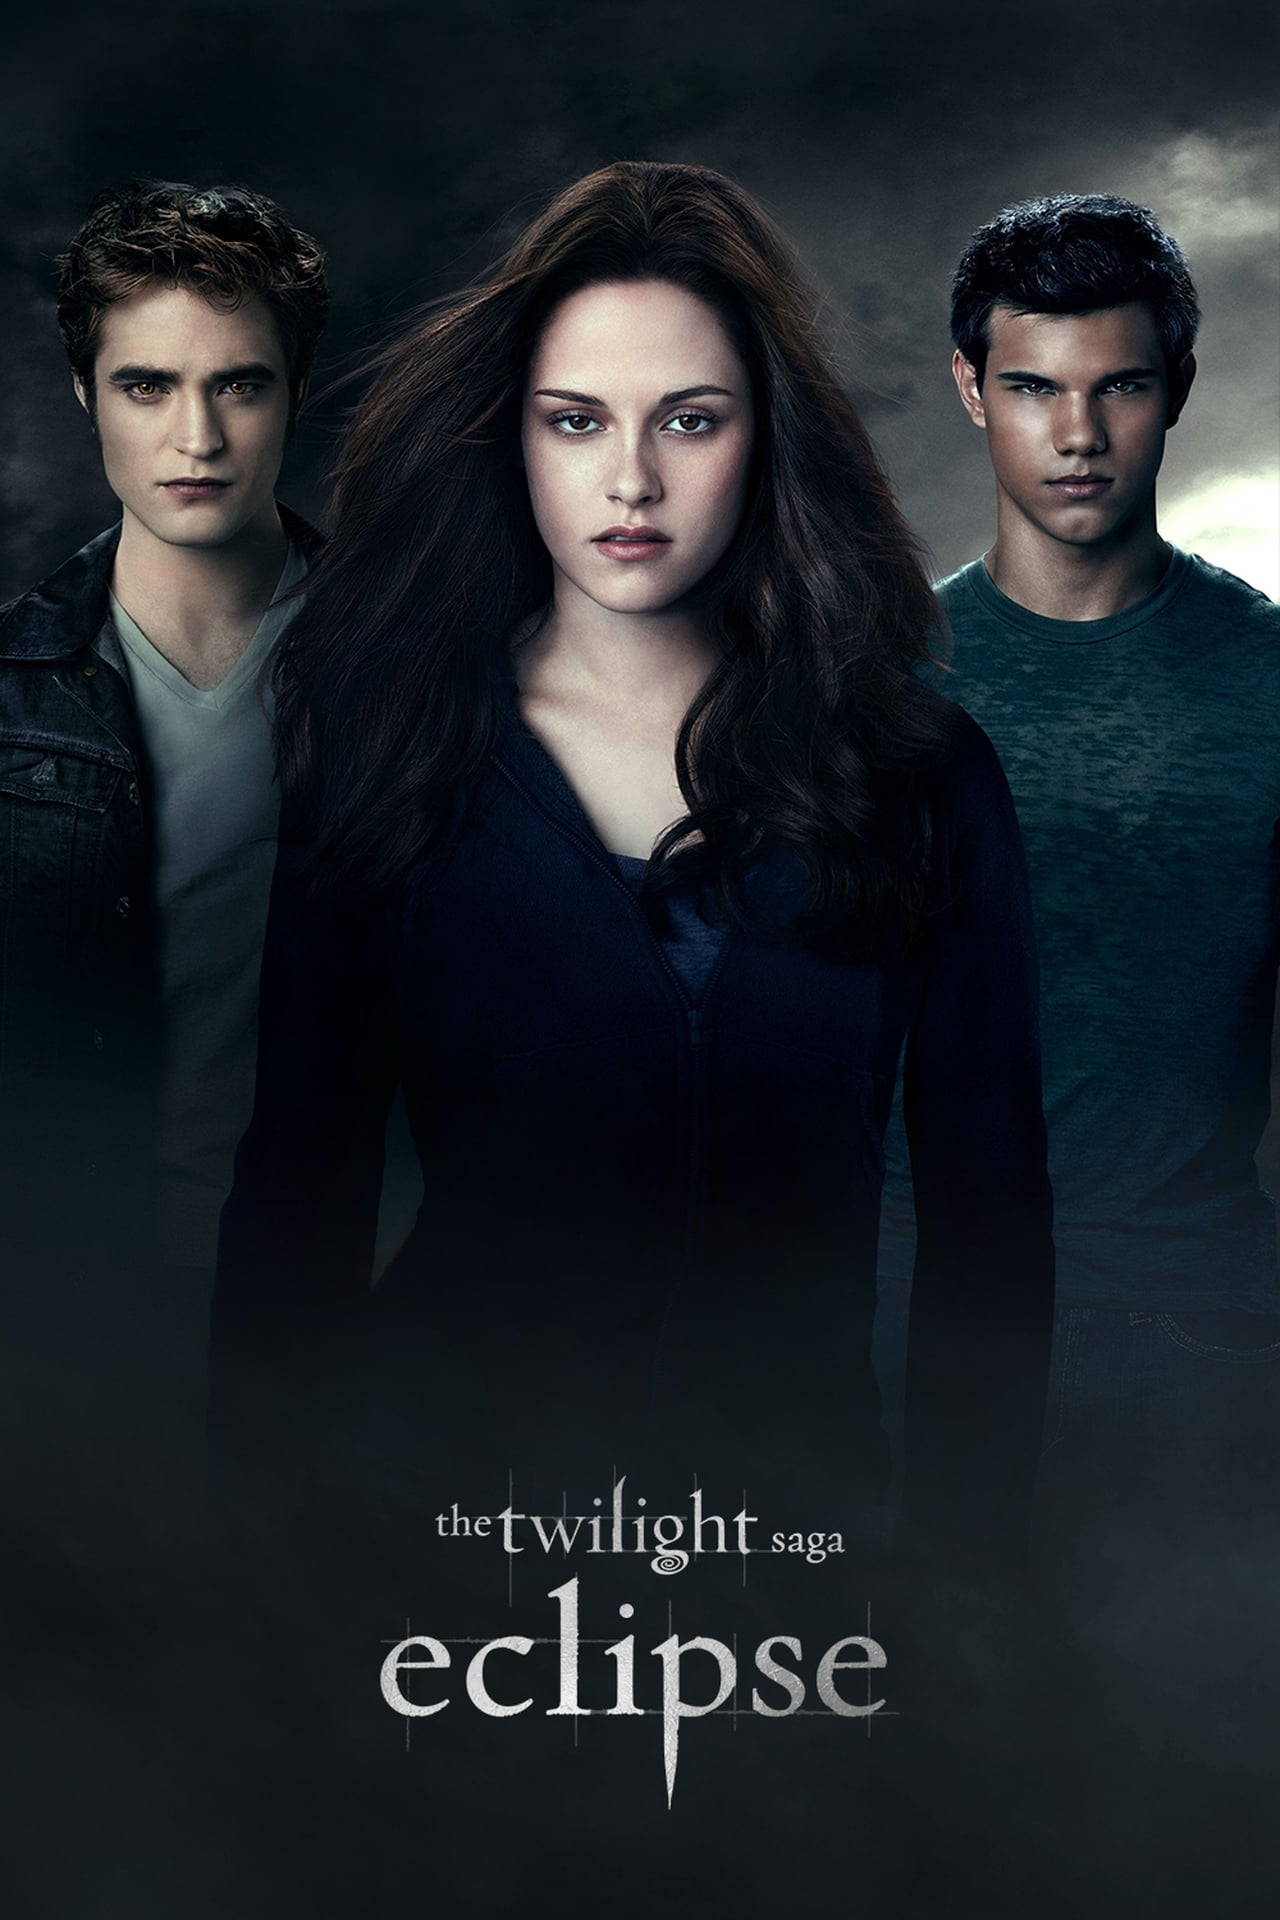 Download The Twilight Saga: Eclipse (2010) [Hindi-English] 480p [350MB] | 720p [850MB] | 1080p [2.2GB]